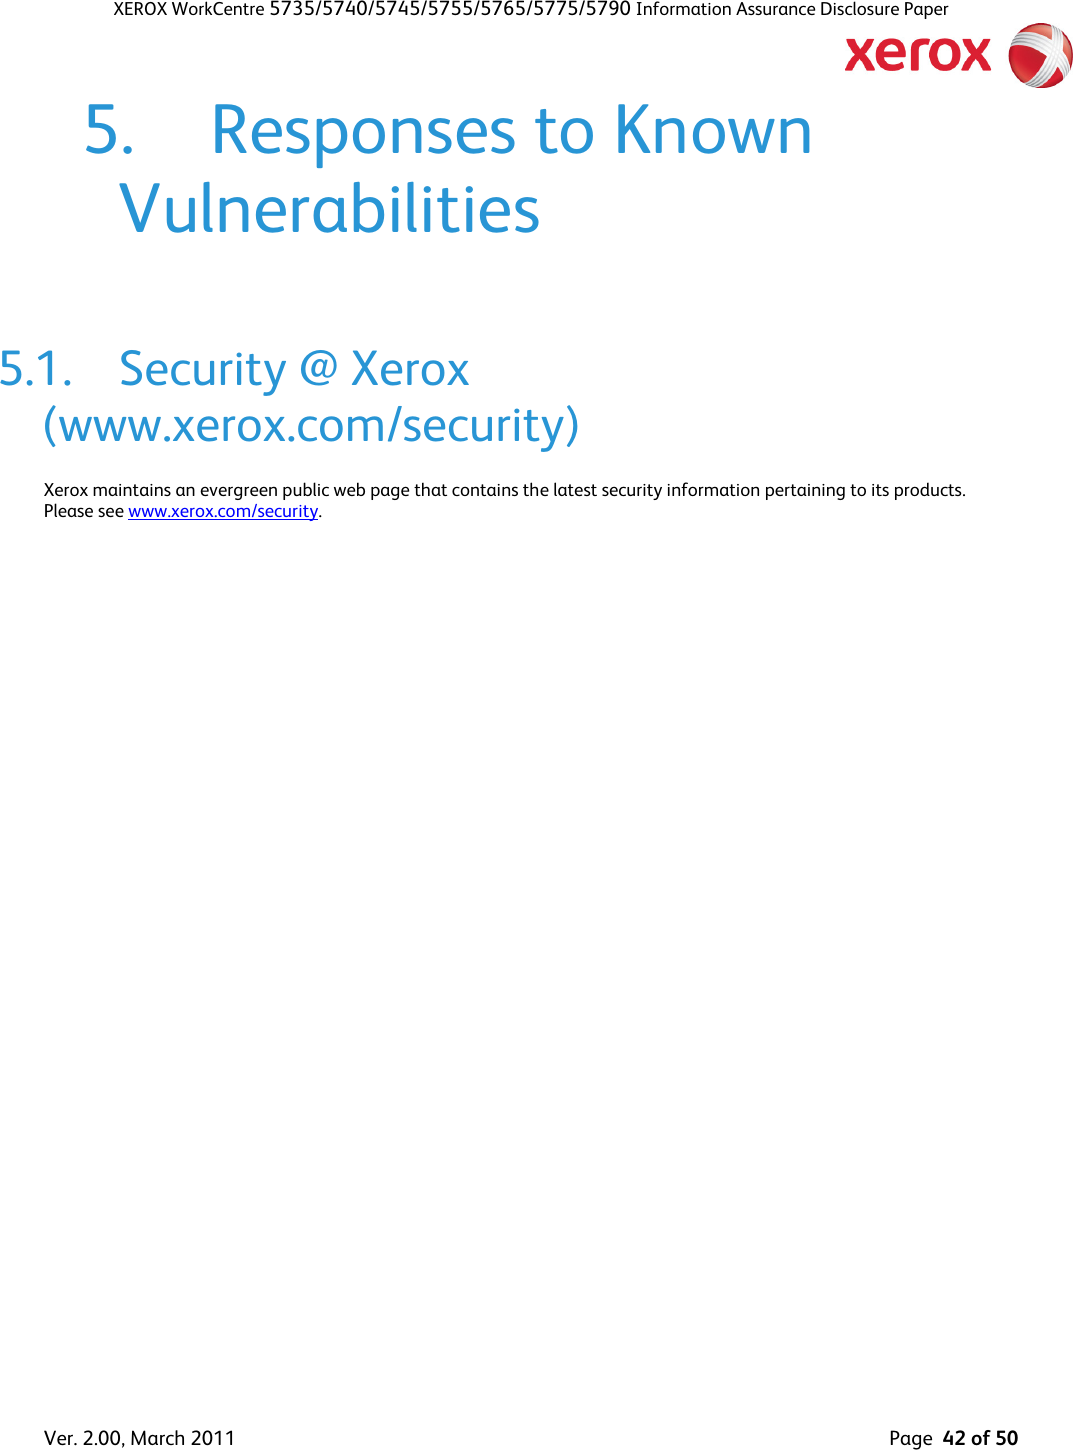 Xerox Workcentre 5735 Users Manual Cert_WorkCentre_5735 5740 5745